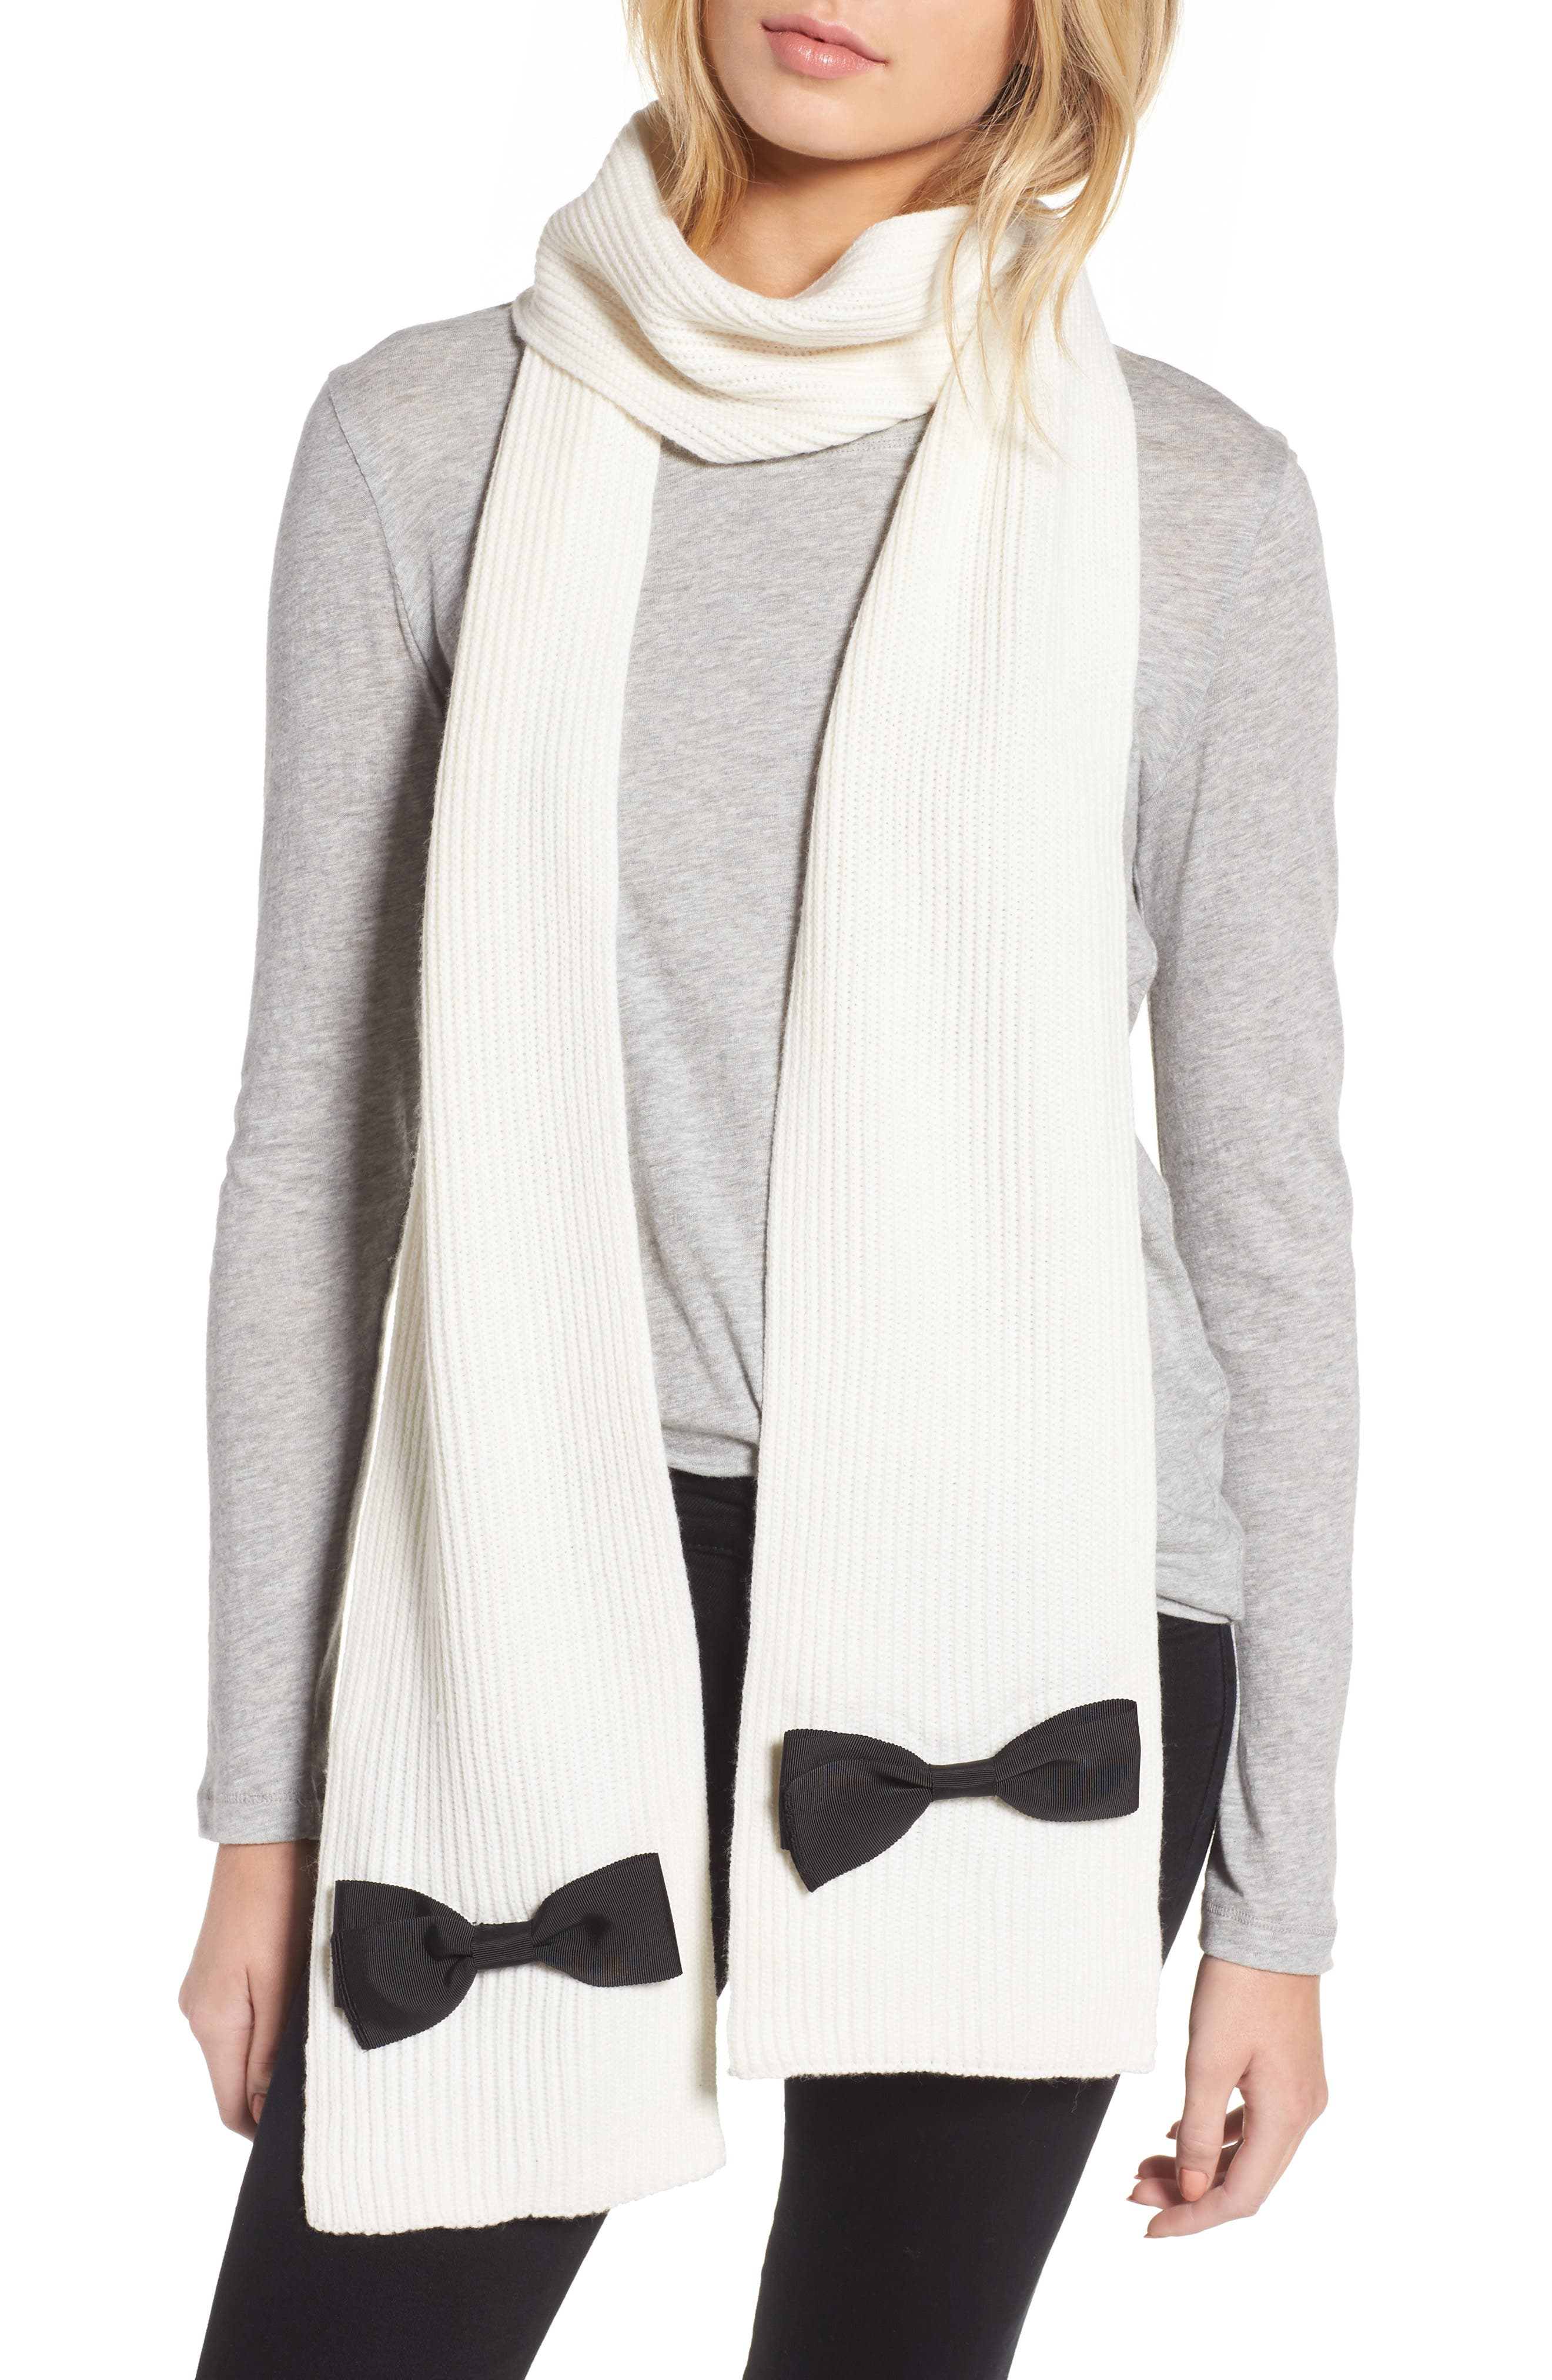 grosgrain bow muffler scarf,                         Main,                         color, Cream